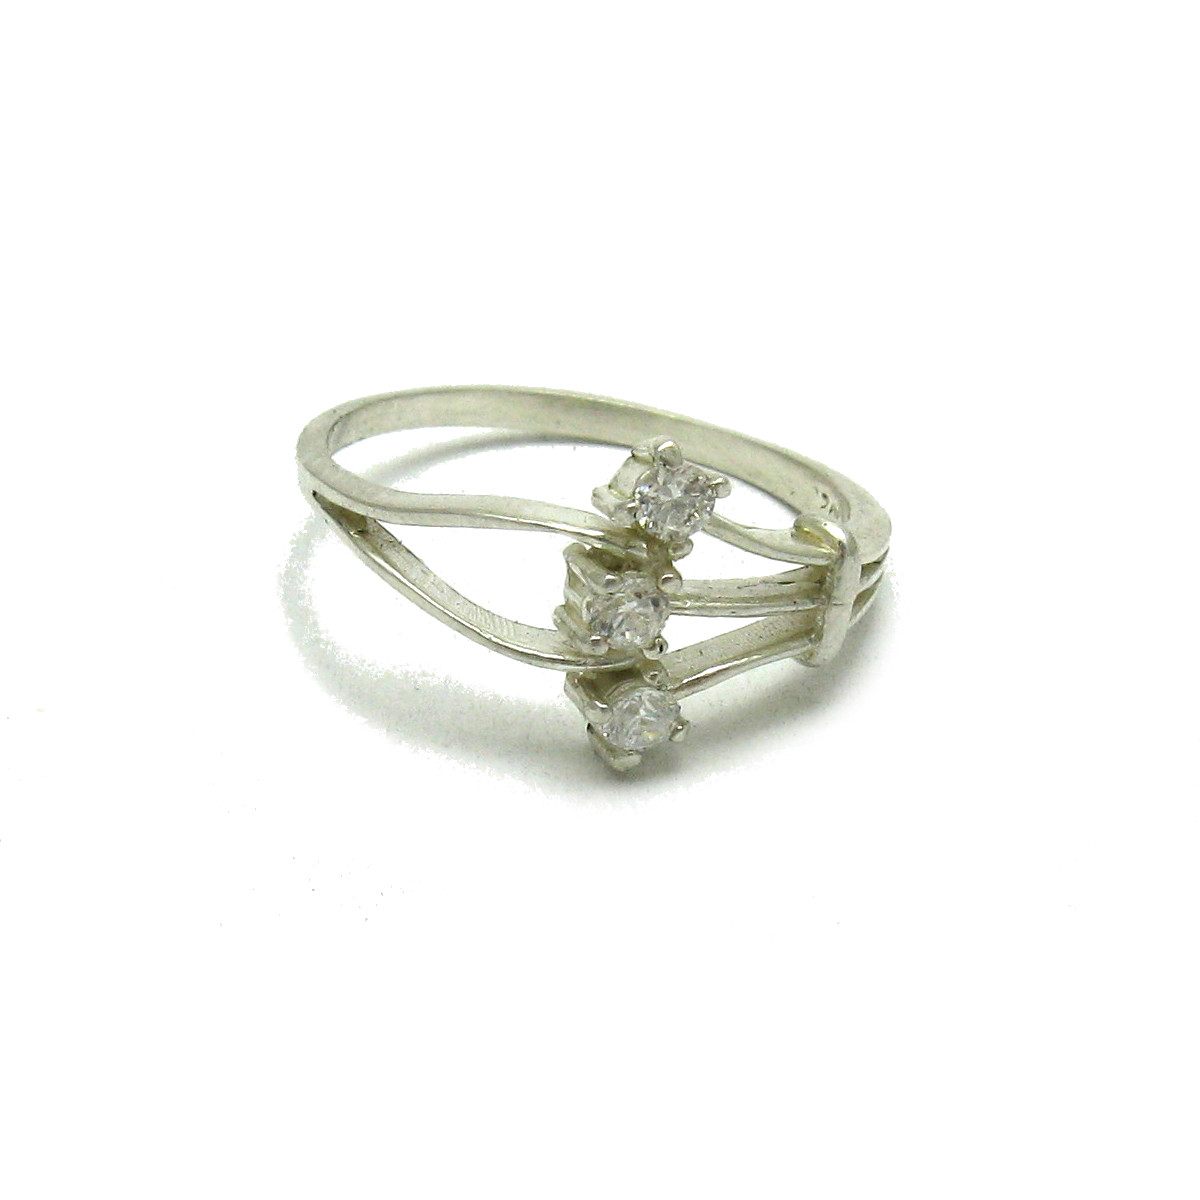 Silver ring - R000527